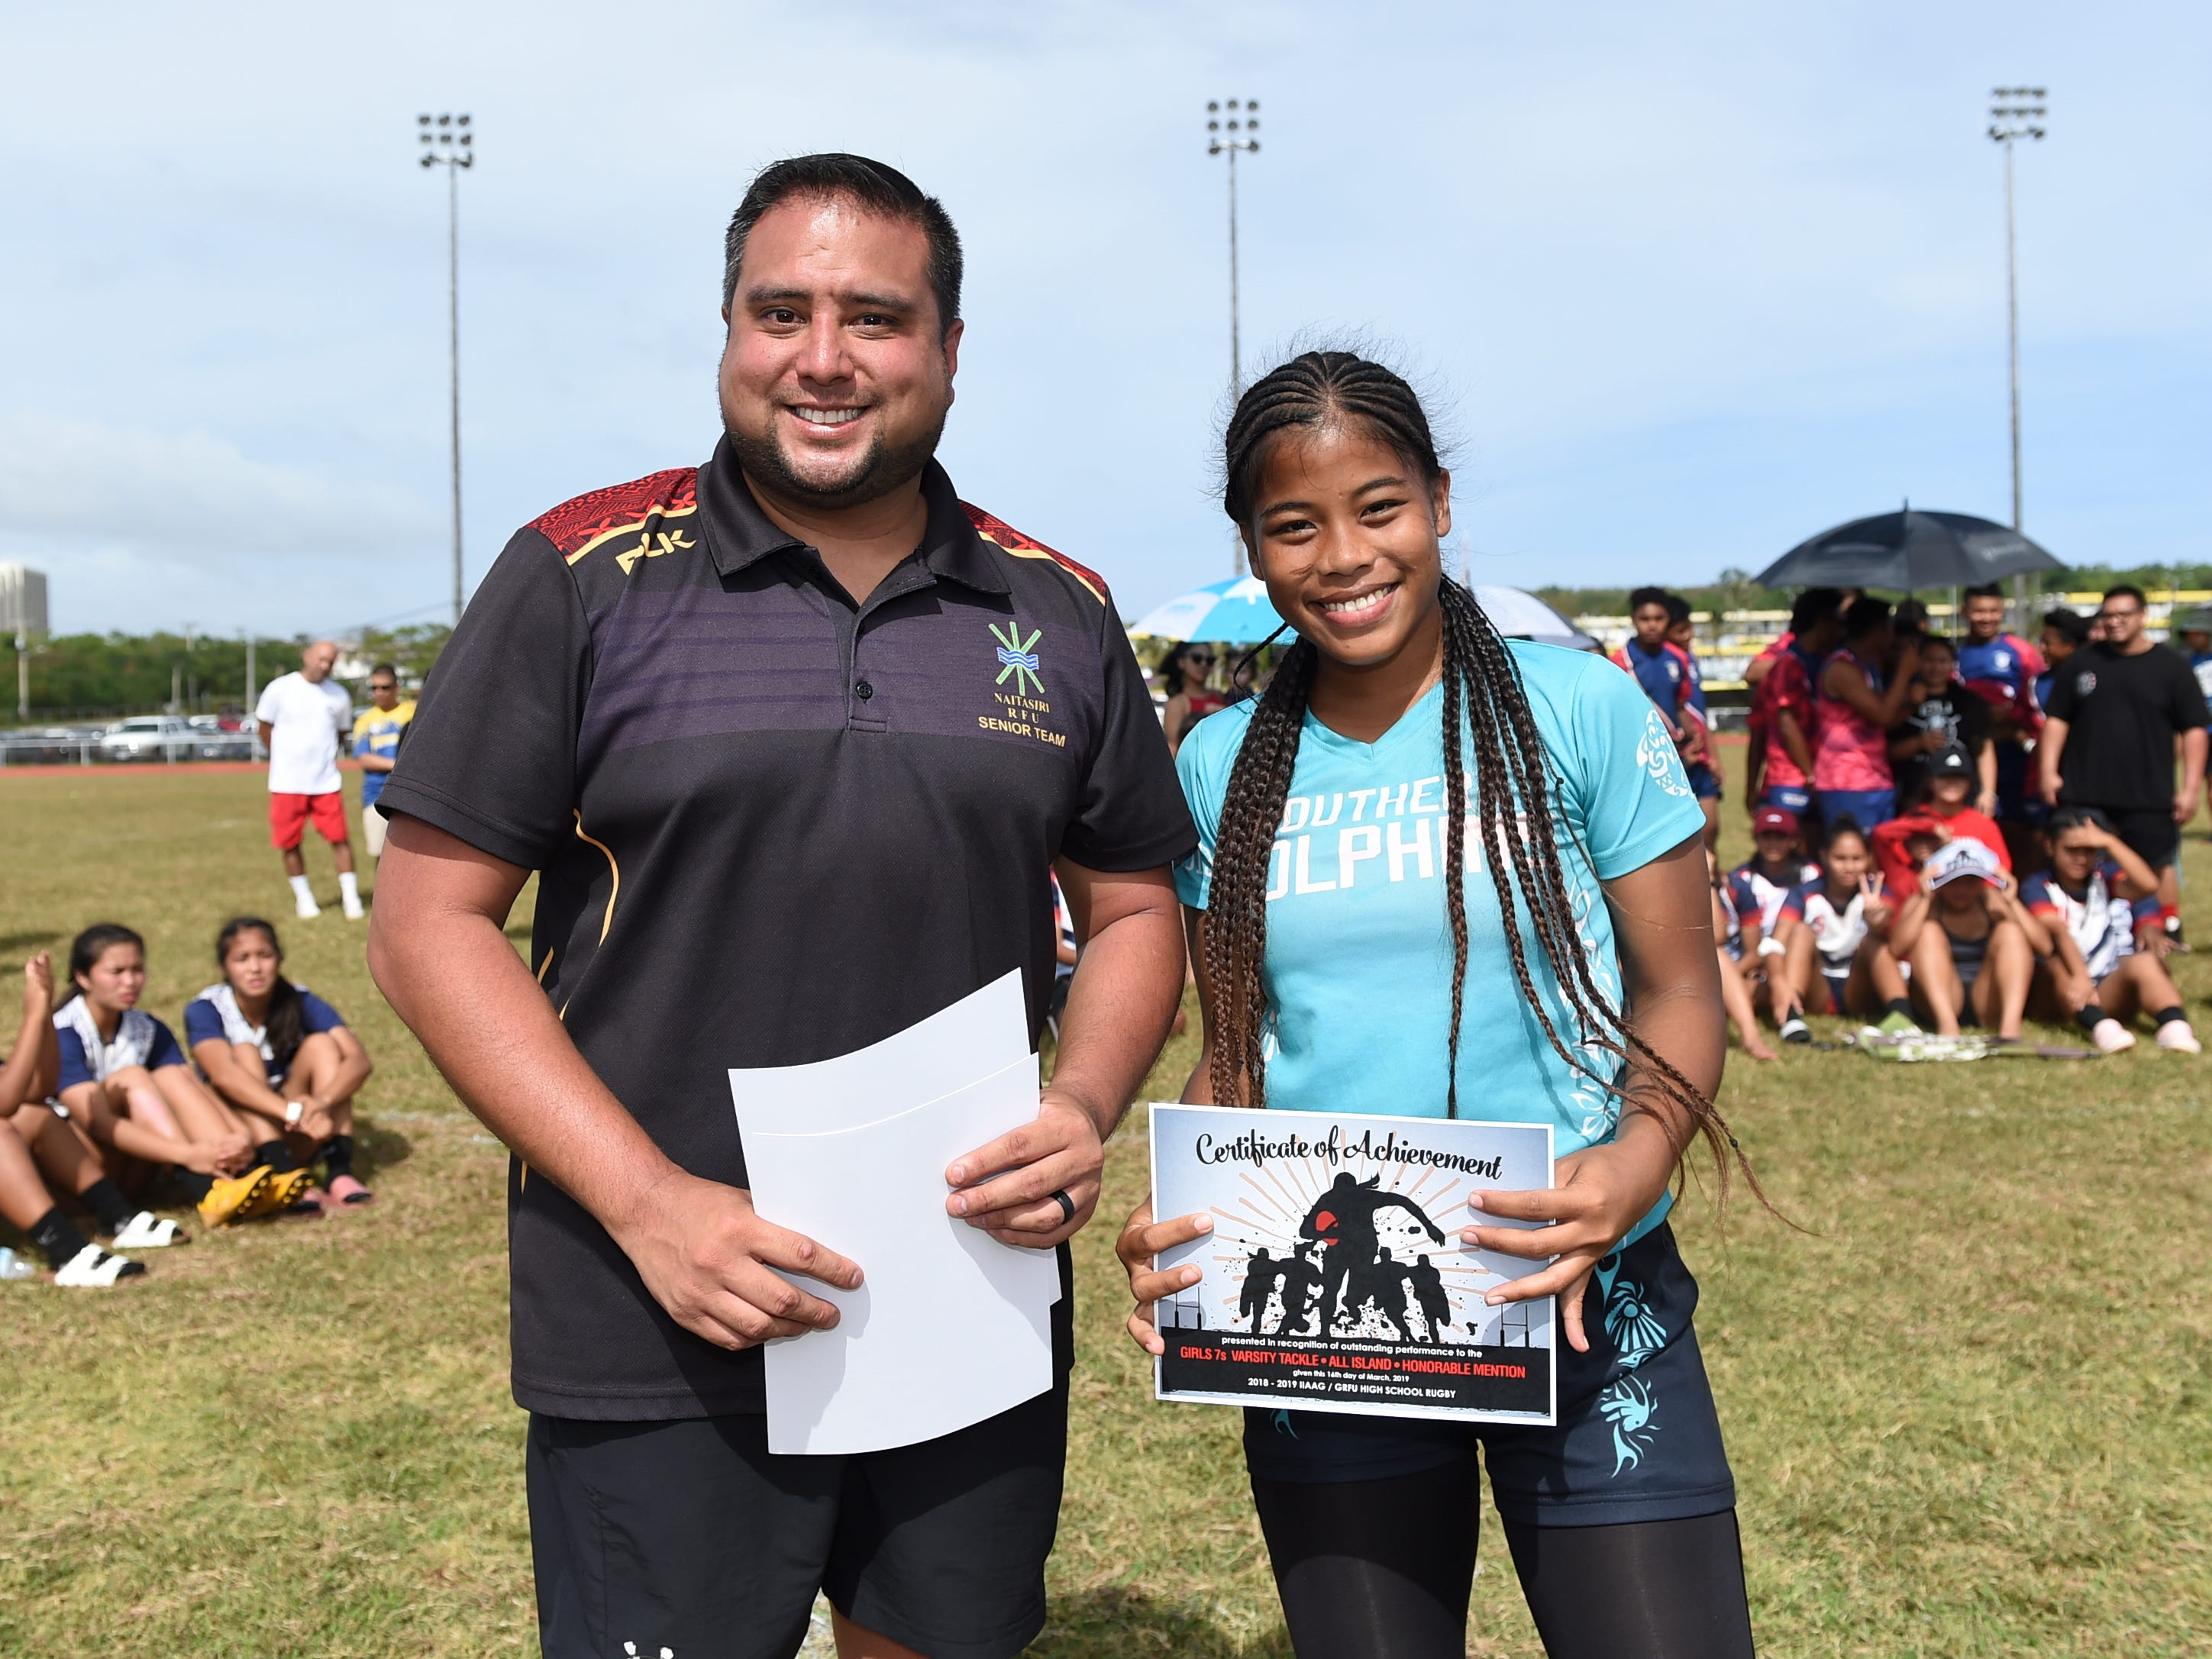 Southern High's Jayann Andrew receives a 2018-2019 IIAAG/GRFU Girls Rugby Honorable Mention award from Fernando Esteves, the league director, at the George Washington High School Field, March 16, 2019.